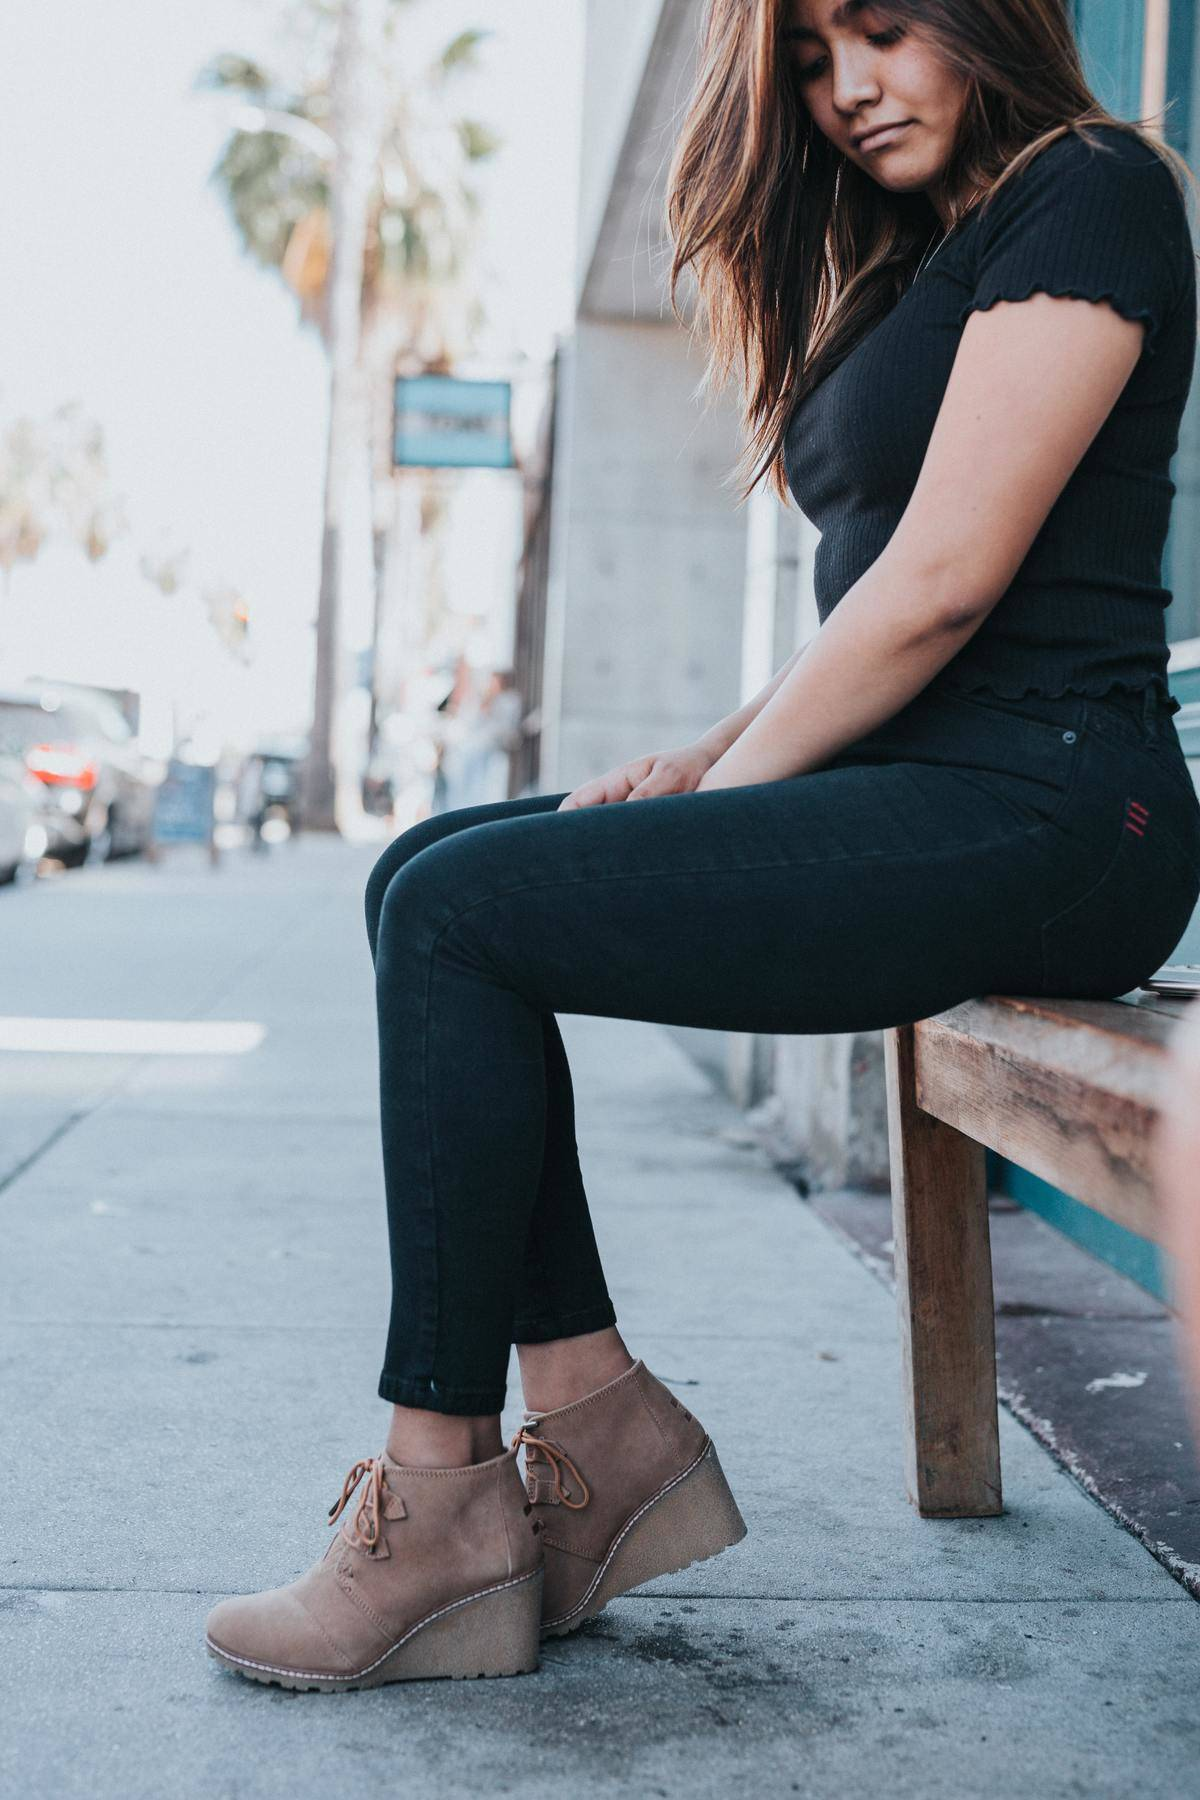 Woman dressed in a black t-shirt and jeans sits on a bench and looks down at her beige wedge shoes.